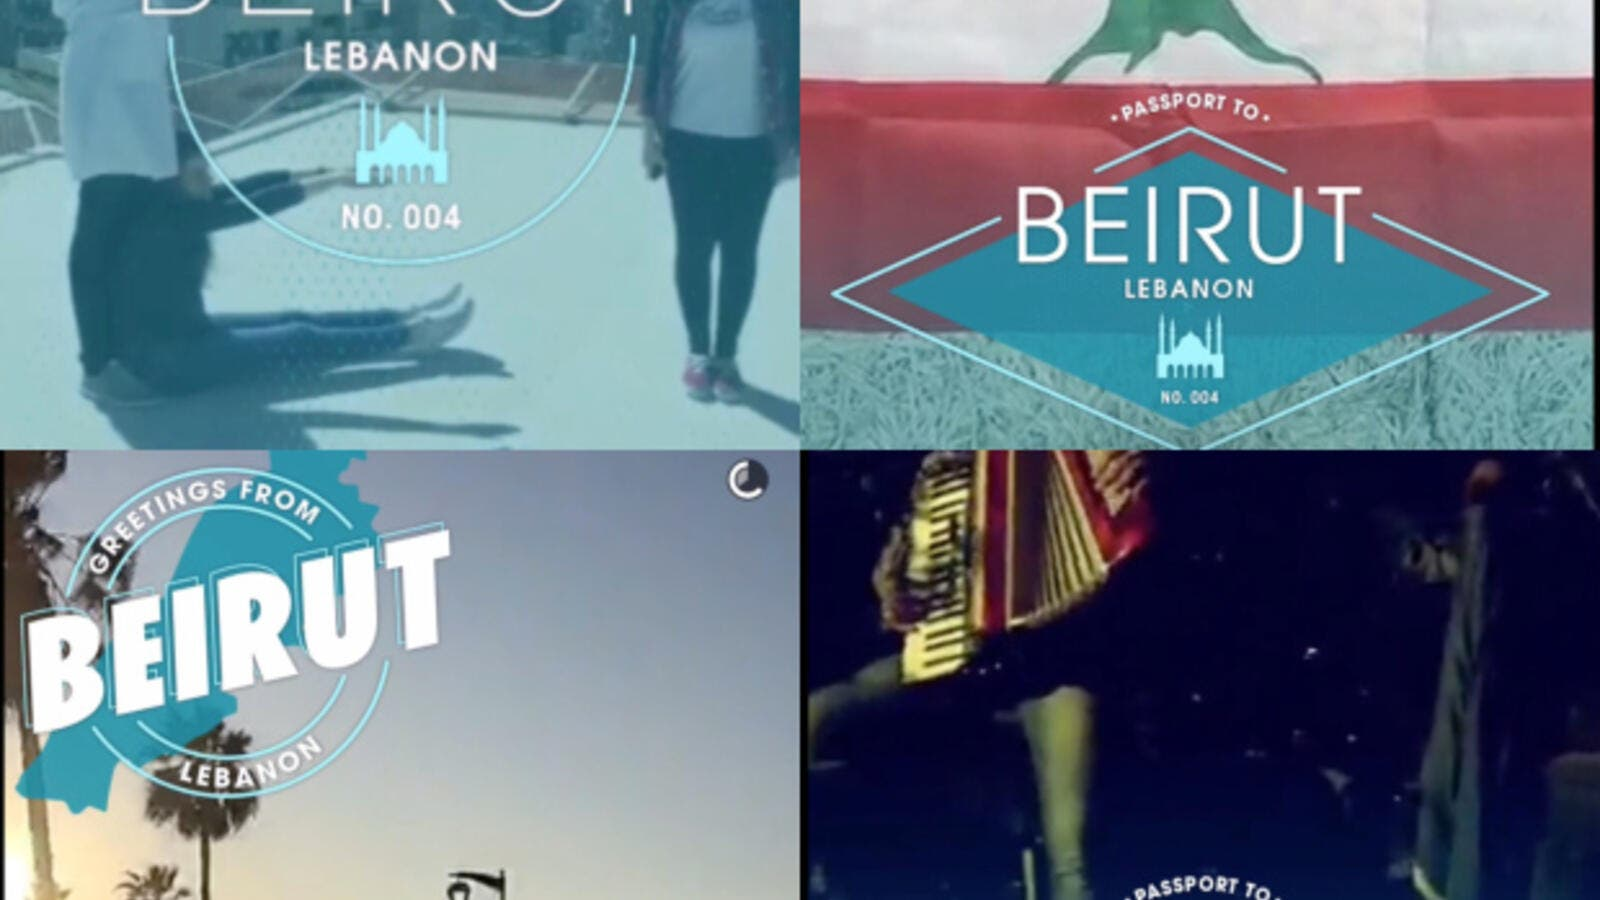 Yesterday's live snapchat story from Beirut showed a city that was, well, just a little bit obsessed with Lebanon's national anthem, amongst other things.  (File)